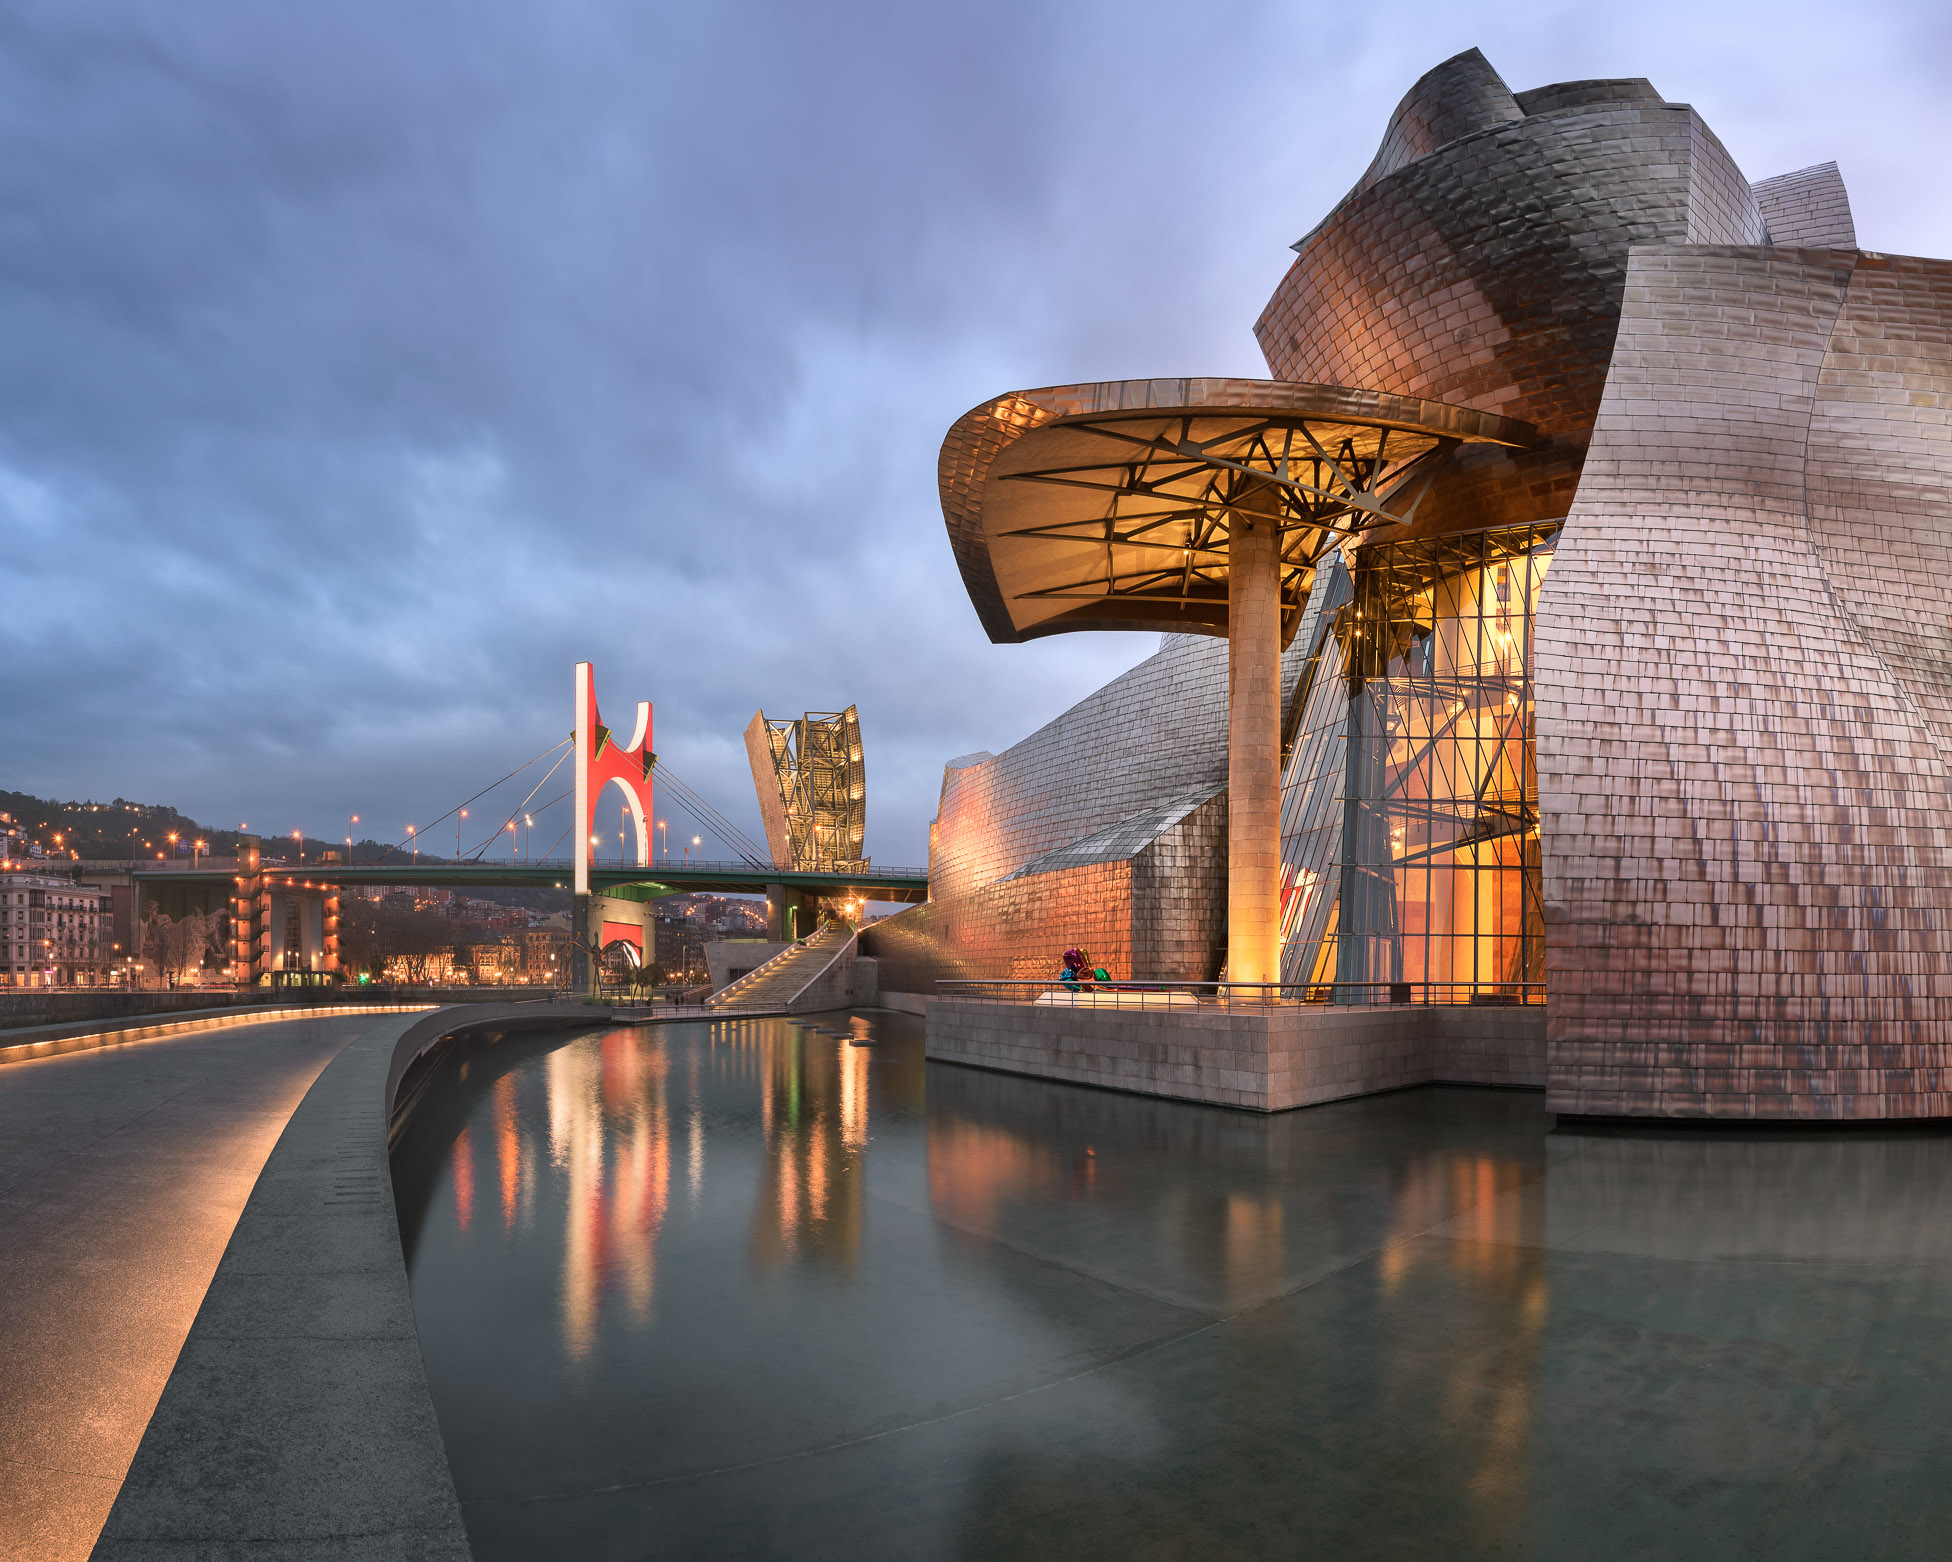 Salbeko Zubia Bridge and Guggenheim Museum in the Evening, Bilbao, Spain